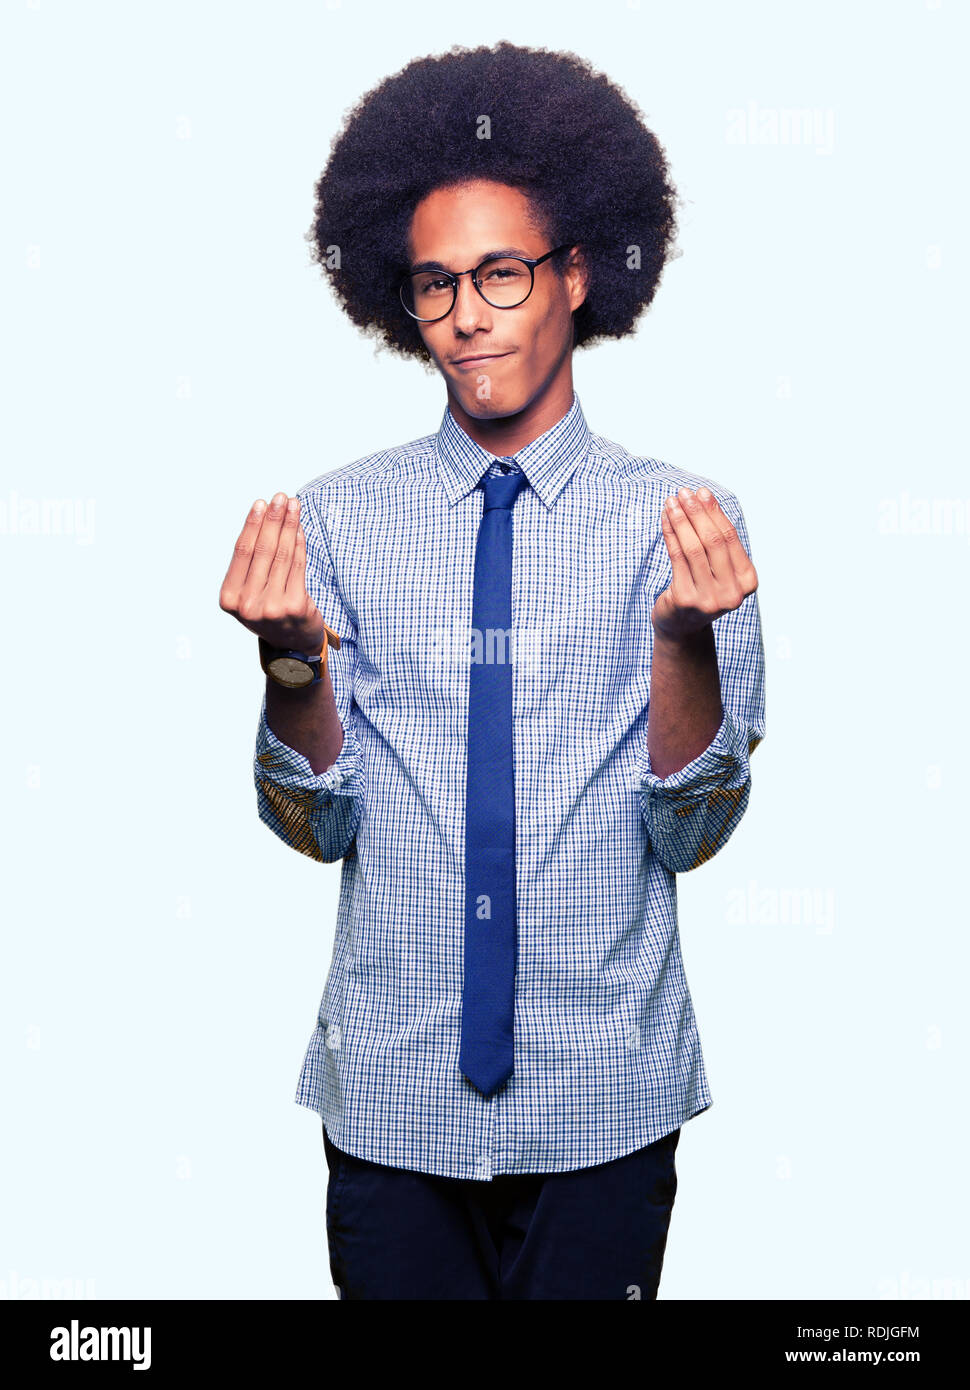 7125d4de591a Young african american business man with afro hair wearing glasses Doing  money gesture with hand